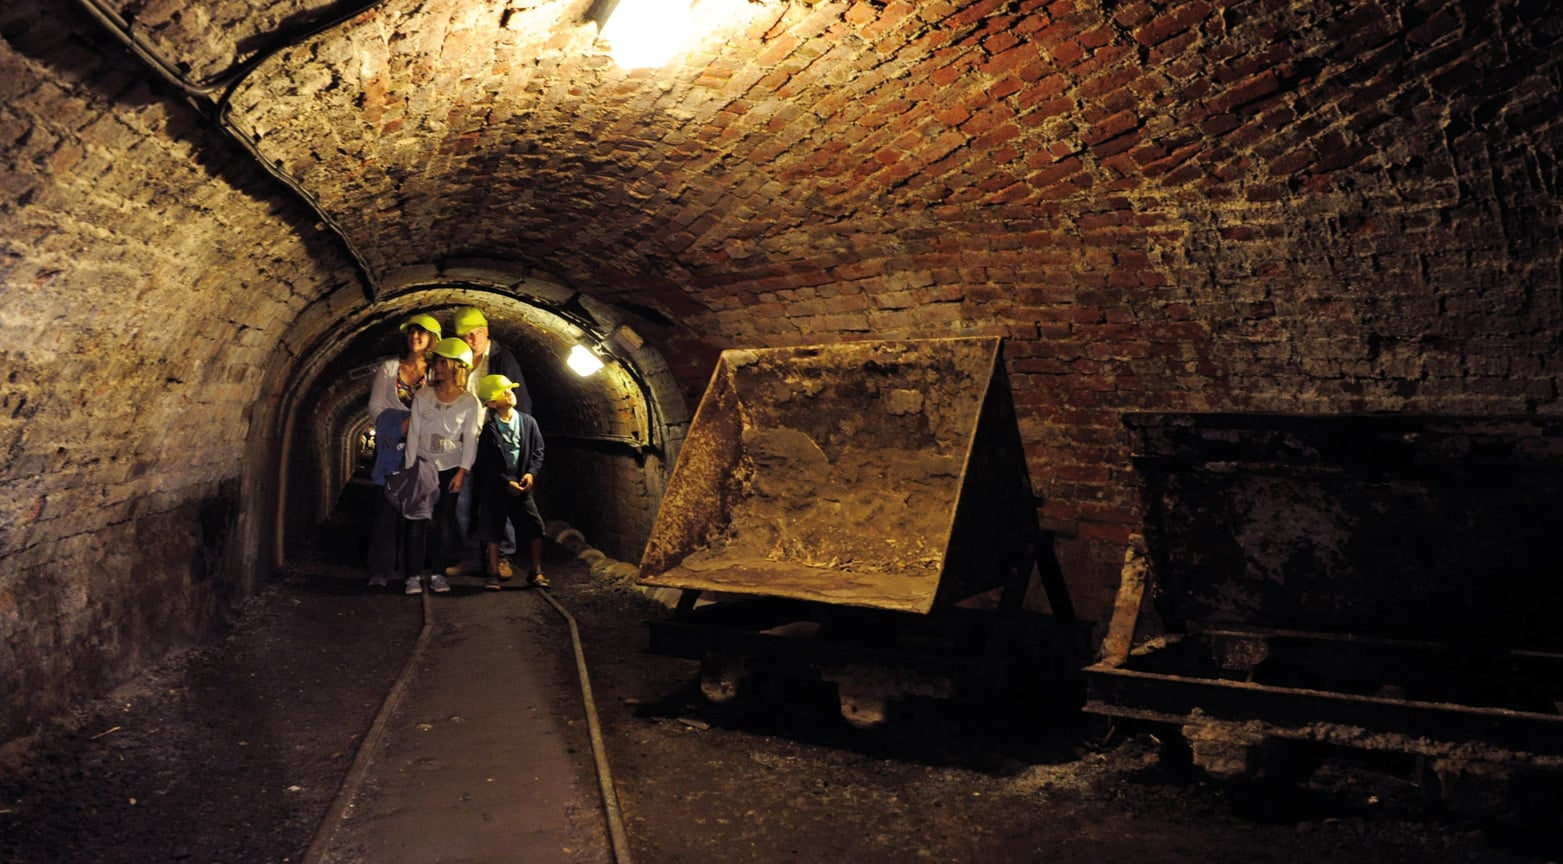 7. Tar Tunnel, Telford - Free entry with National Art Pass